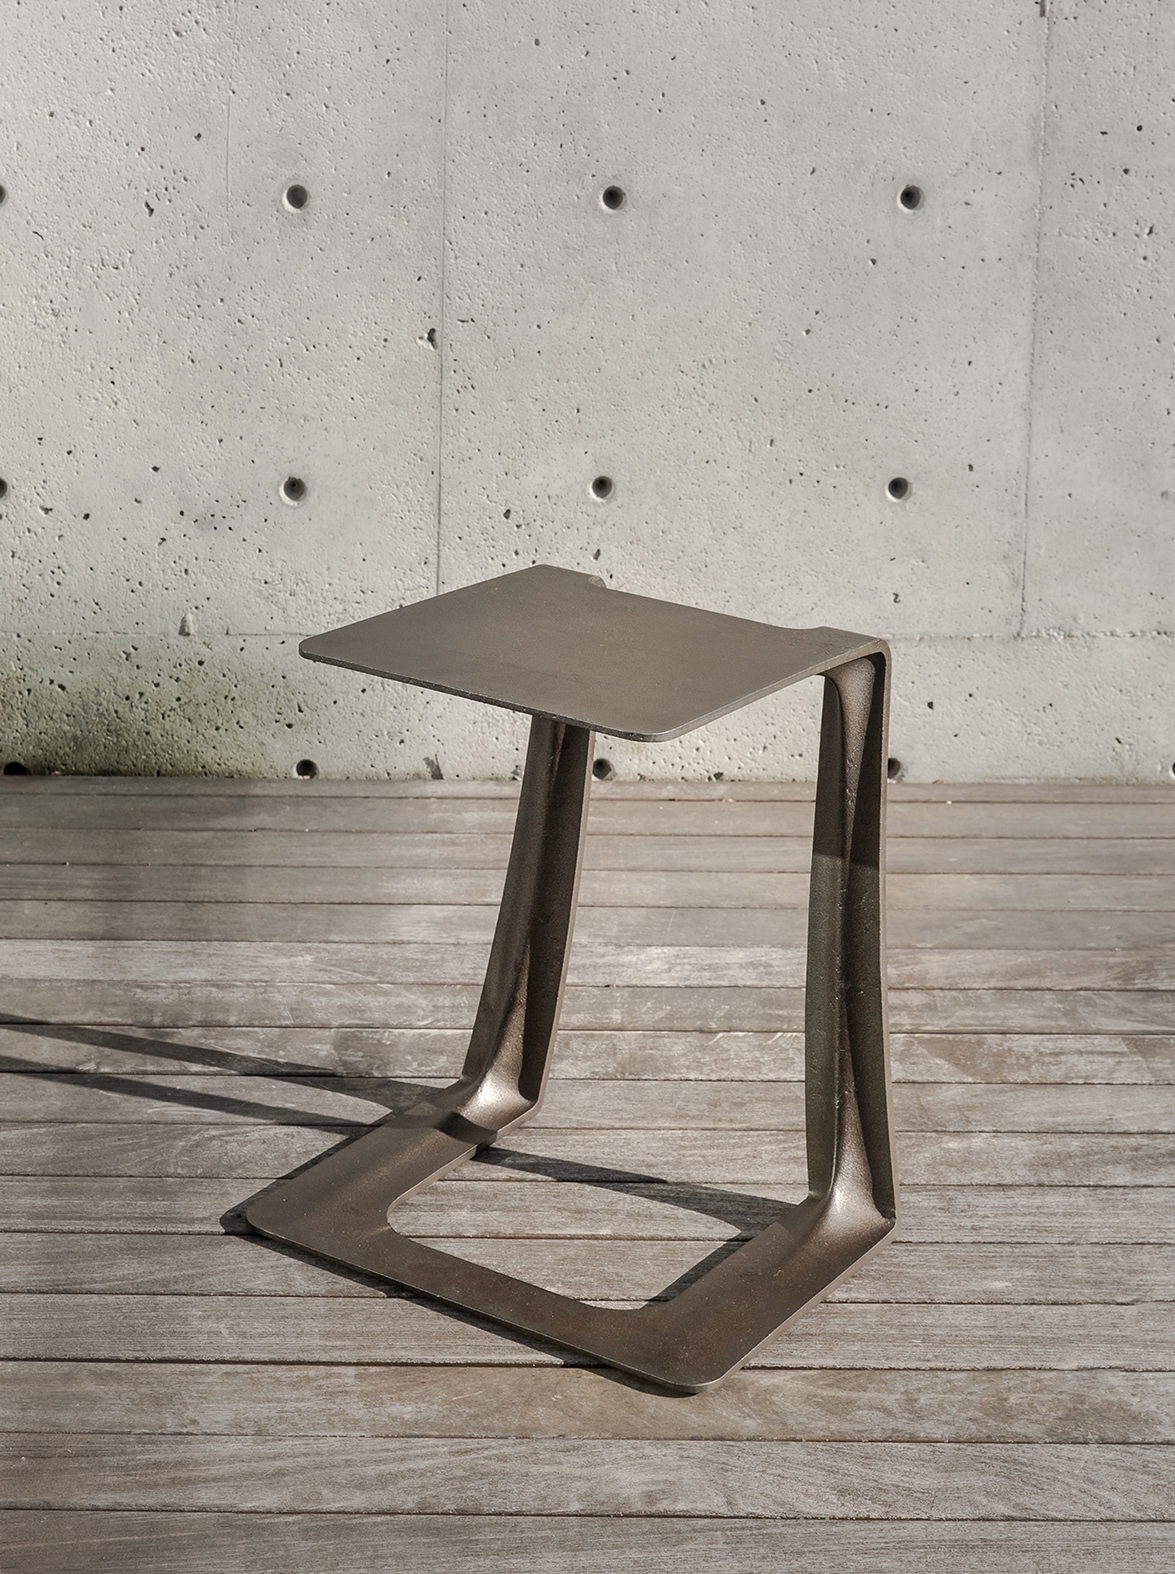 The Garrison (Stools & benches) Stacklab + Rebart (Toronto, Canada)